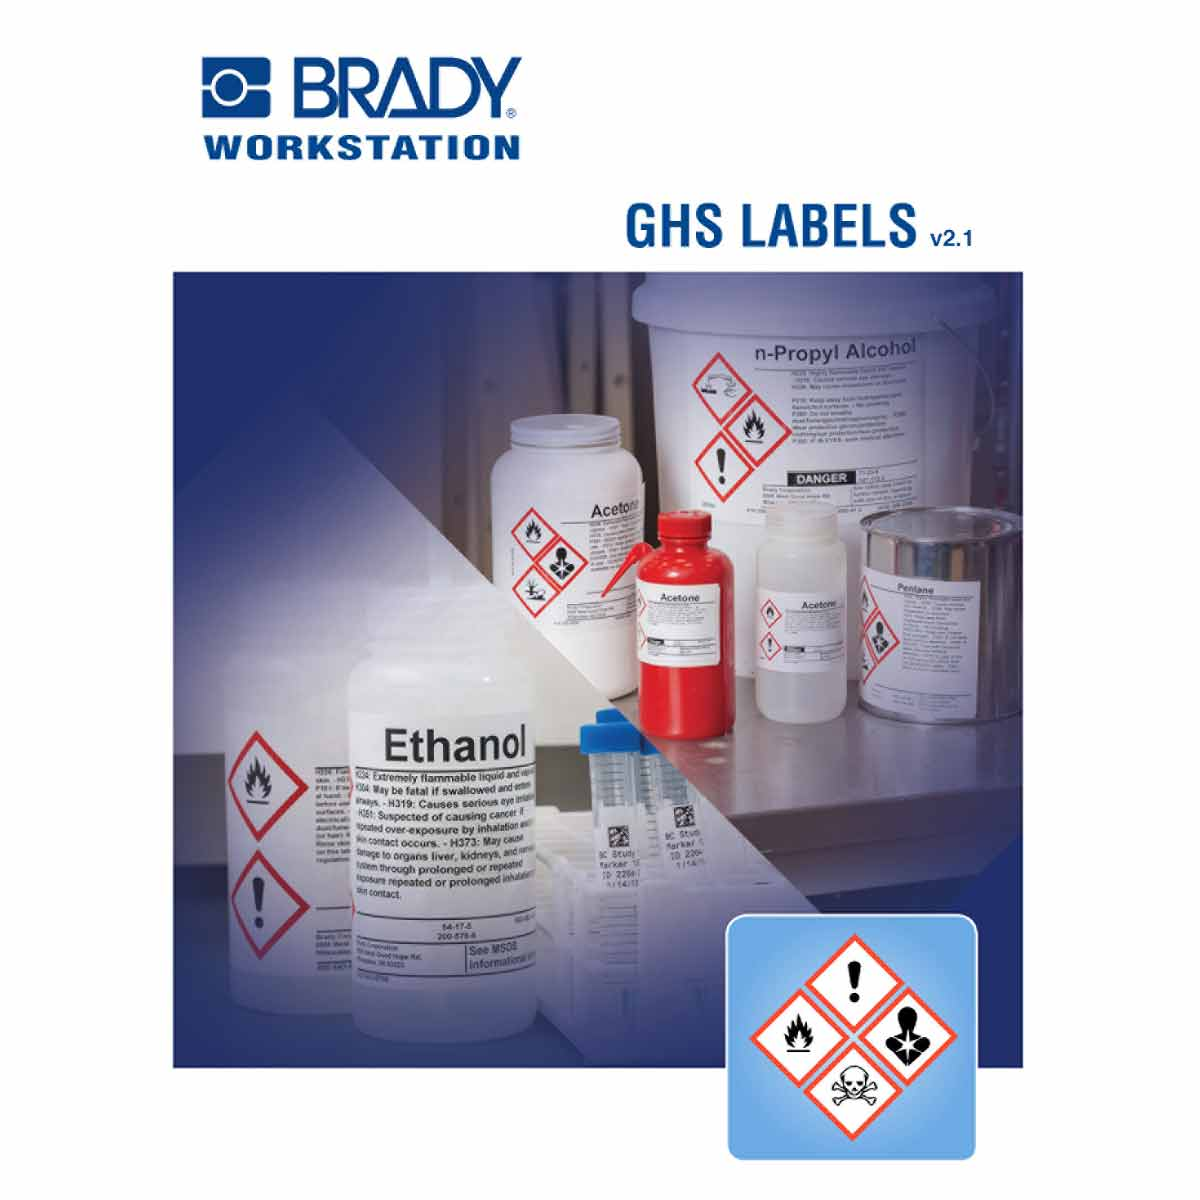 BWRK-GHS-DWN BRADY DOWNLOAD FOR GHS LABELS APP 75447354274